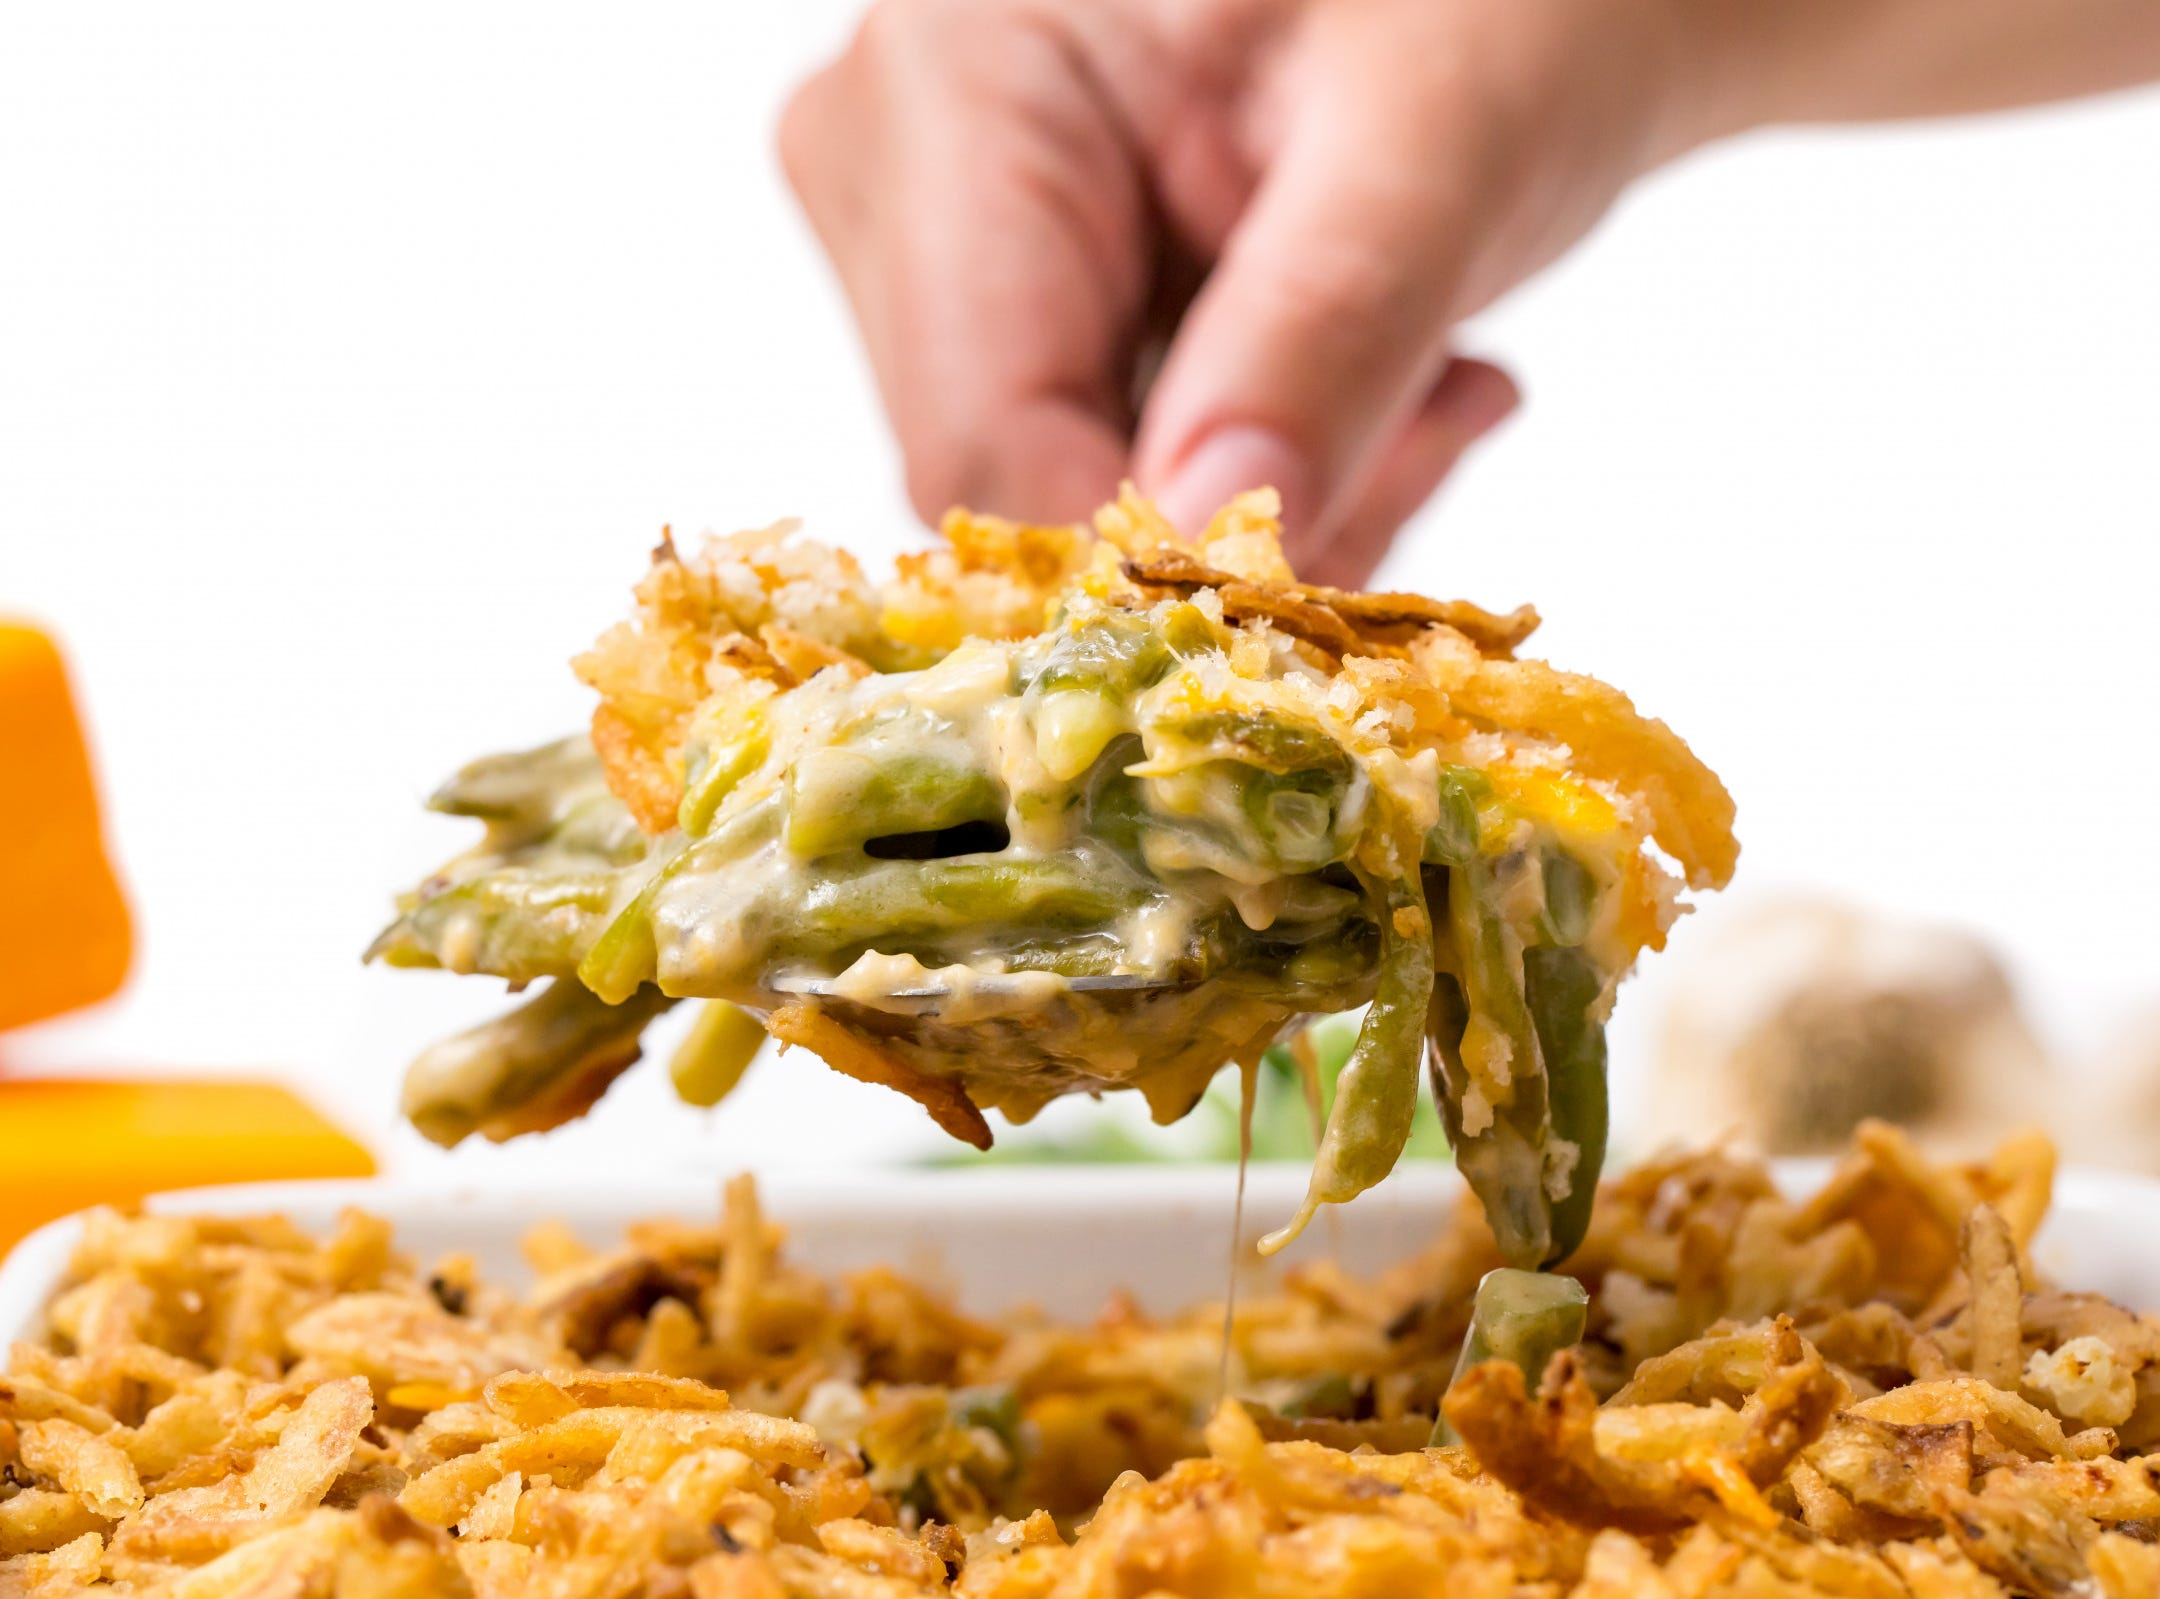 Cheesy, crunchy and garlicky: Could you ask for anything more from green beans? Kicking the classic green bean casserole up a notch, this Instant Pot green bean casserole recipe, inspired by Stay Snatched, will have you and your fellow diners digging for seconds.